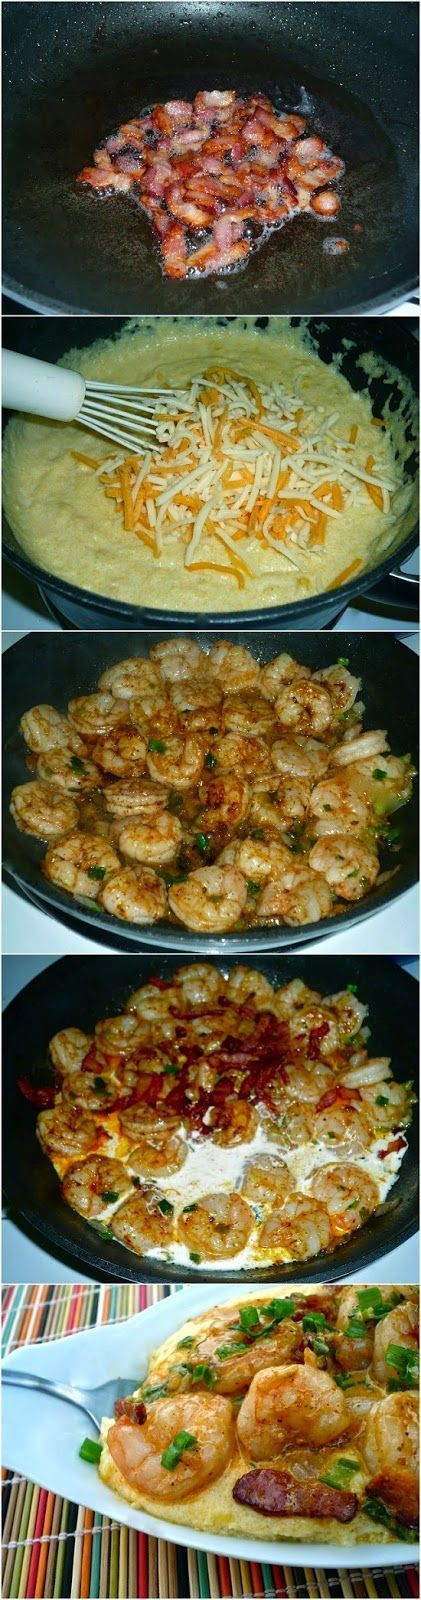 The Weekend Gourmet: #SundaySupper Comfort Food with Lee Woodruff...Featuring Down-Home Comforting Shrimp and Grits This.